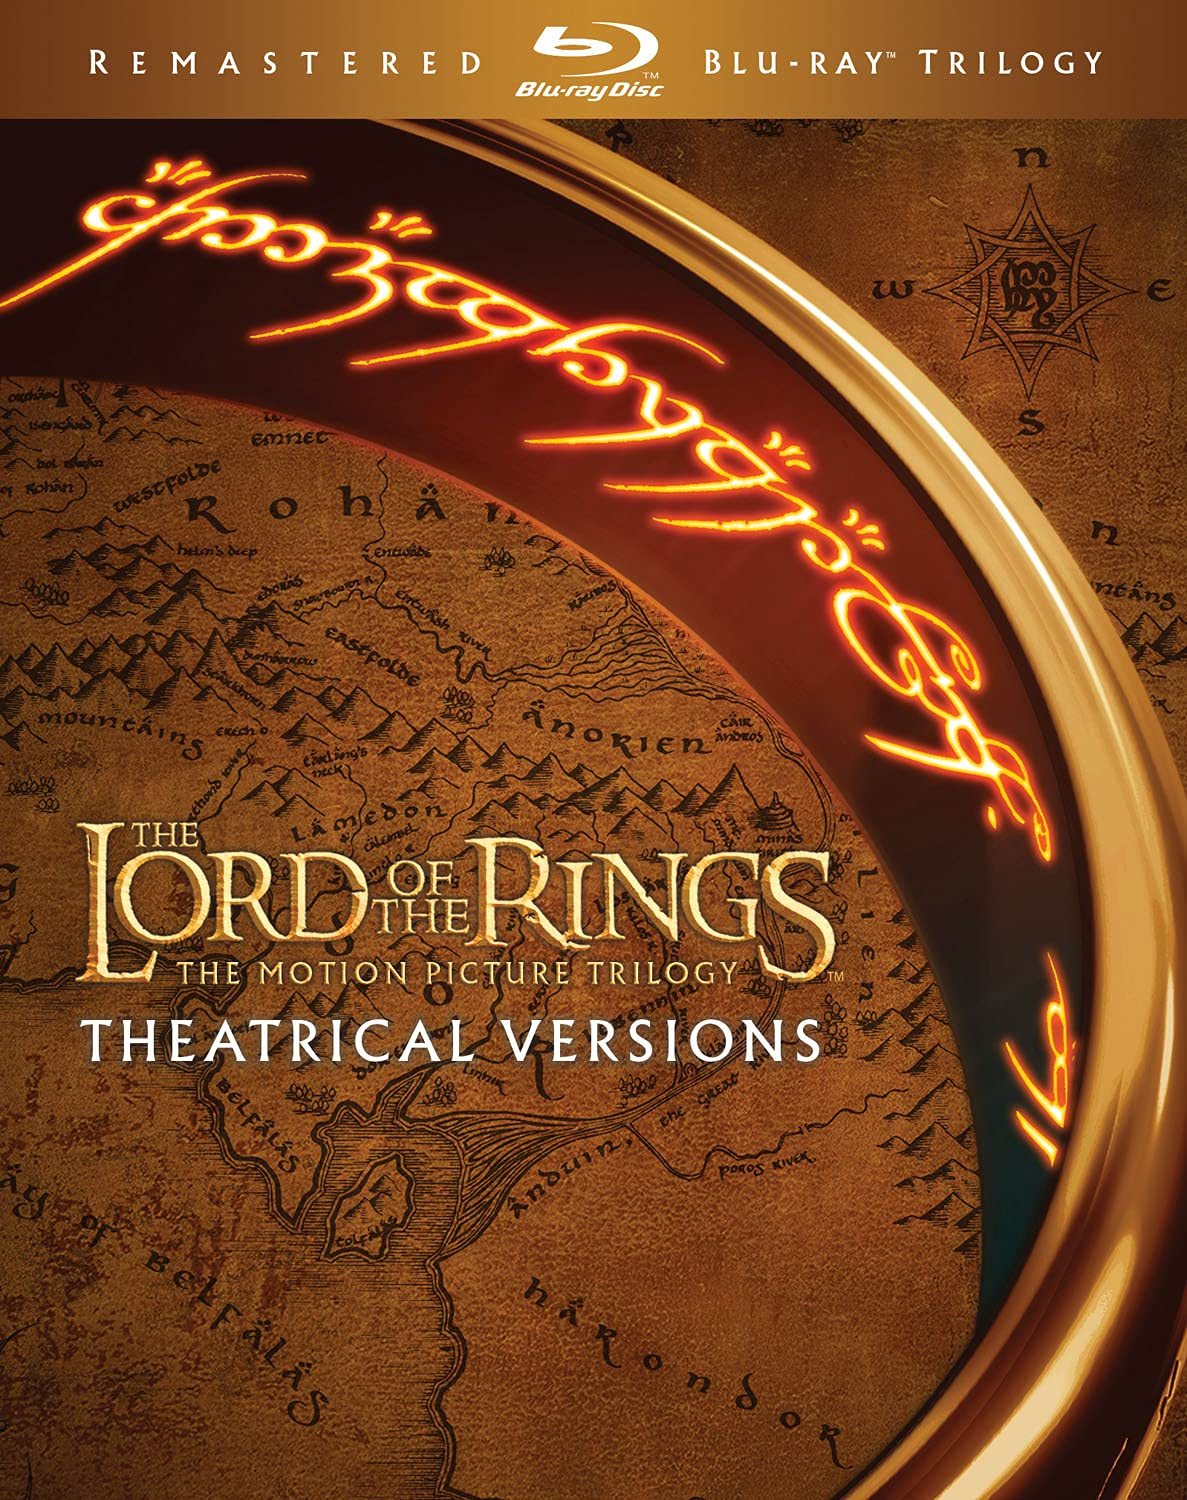 The Lord of the Rings Motion Picture Trilogy (Theatrical Edition)(Blu-ray Remaster)